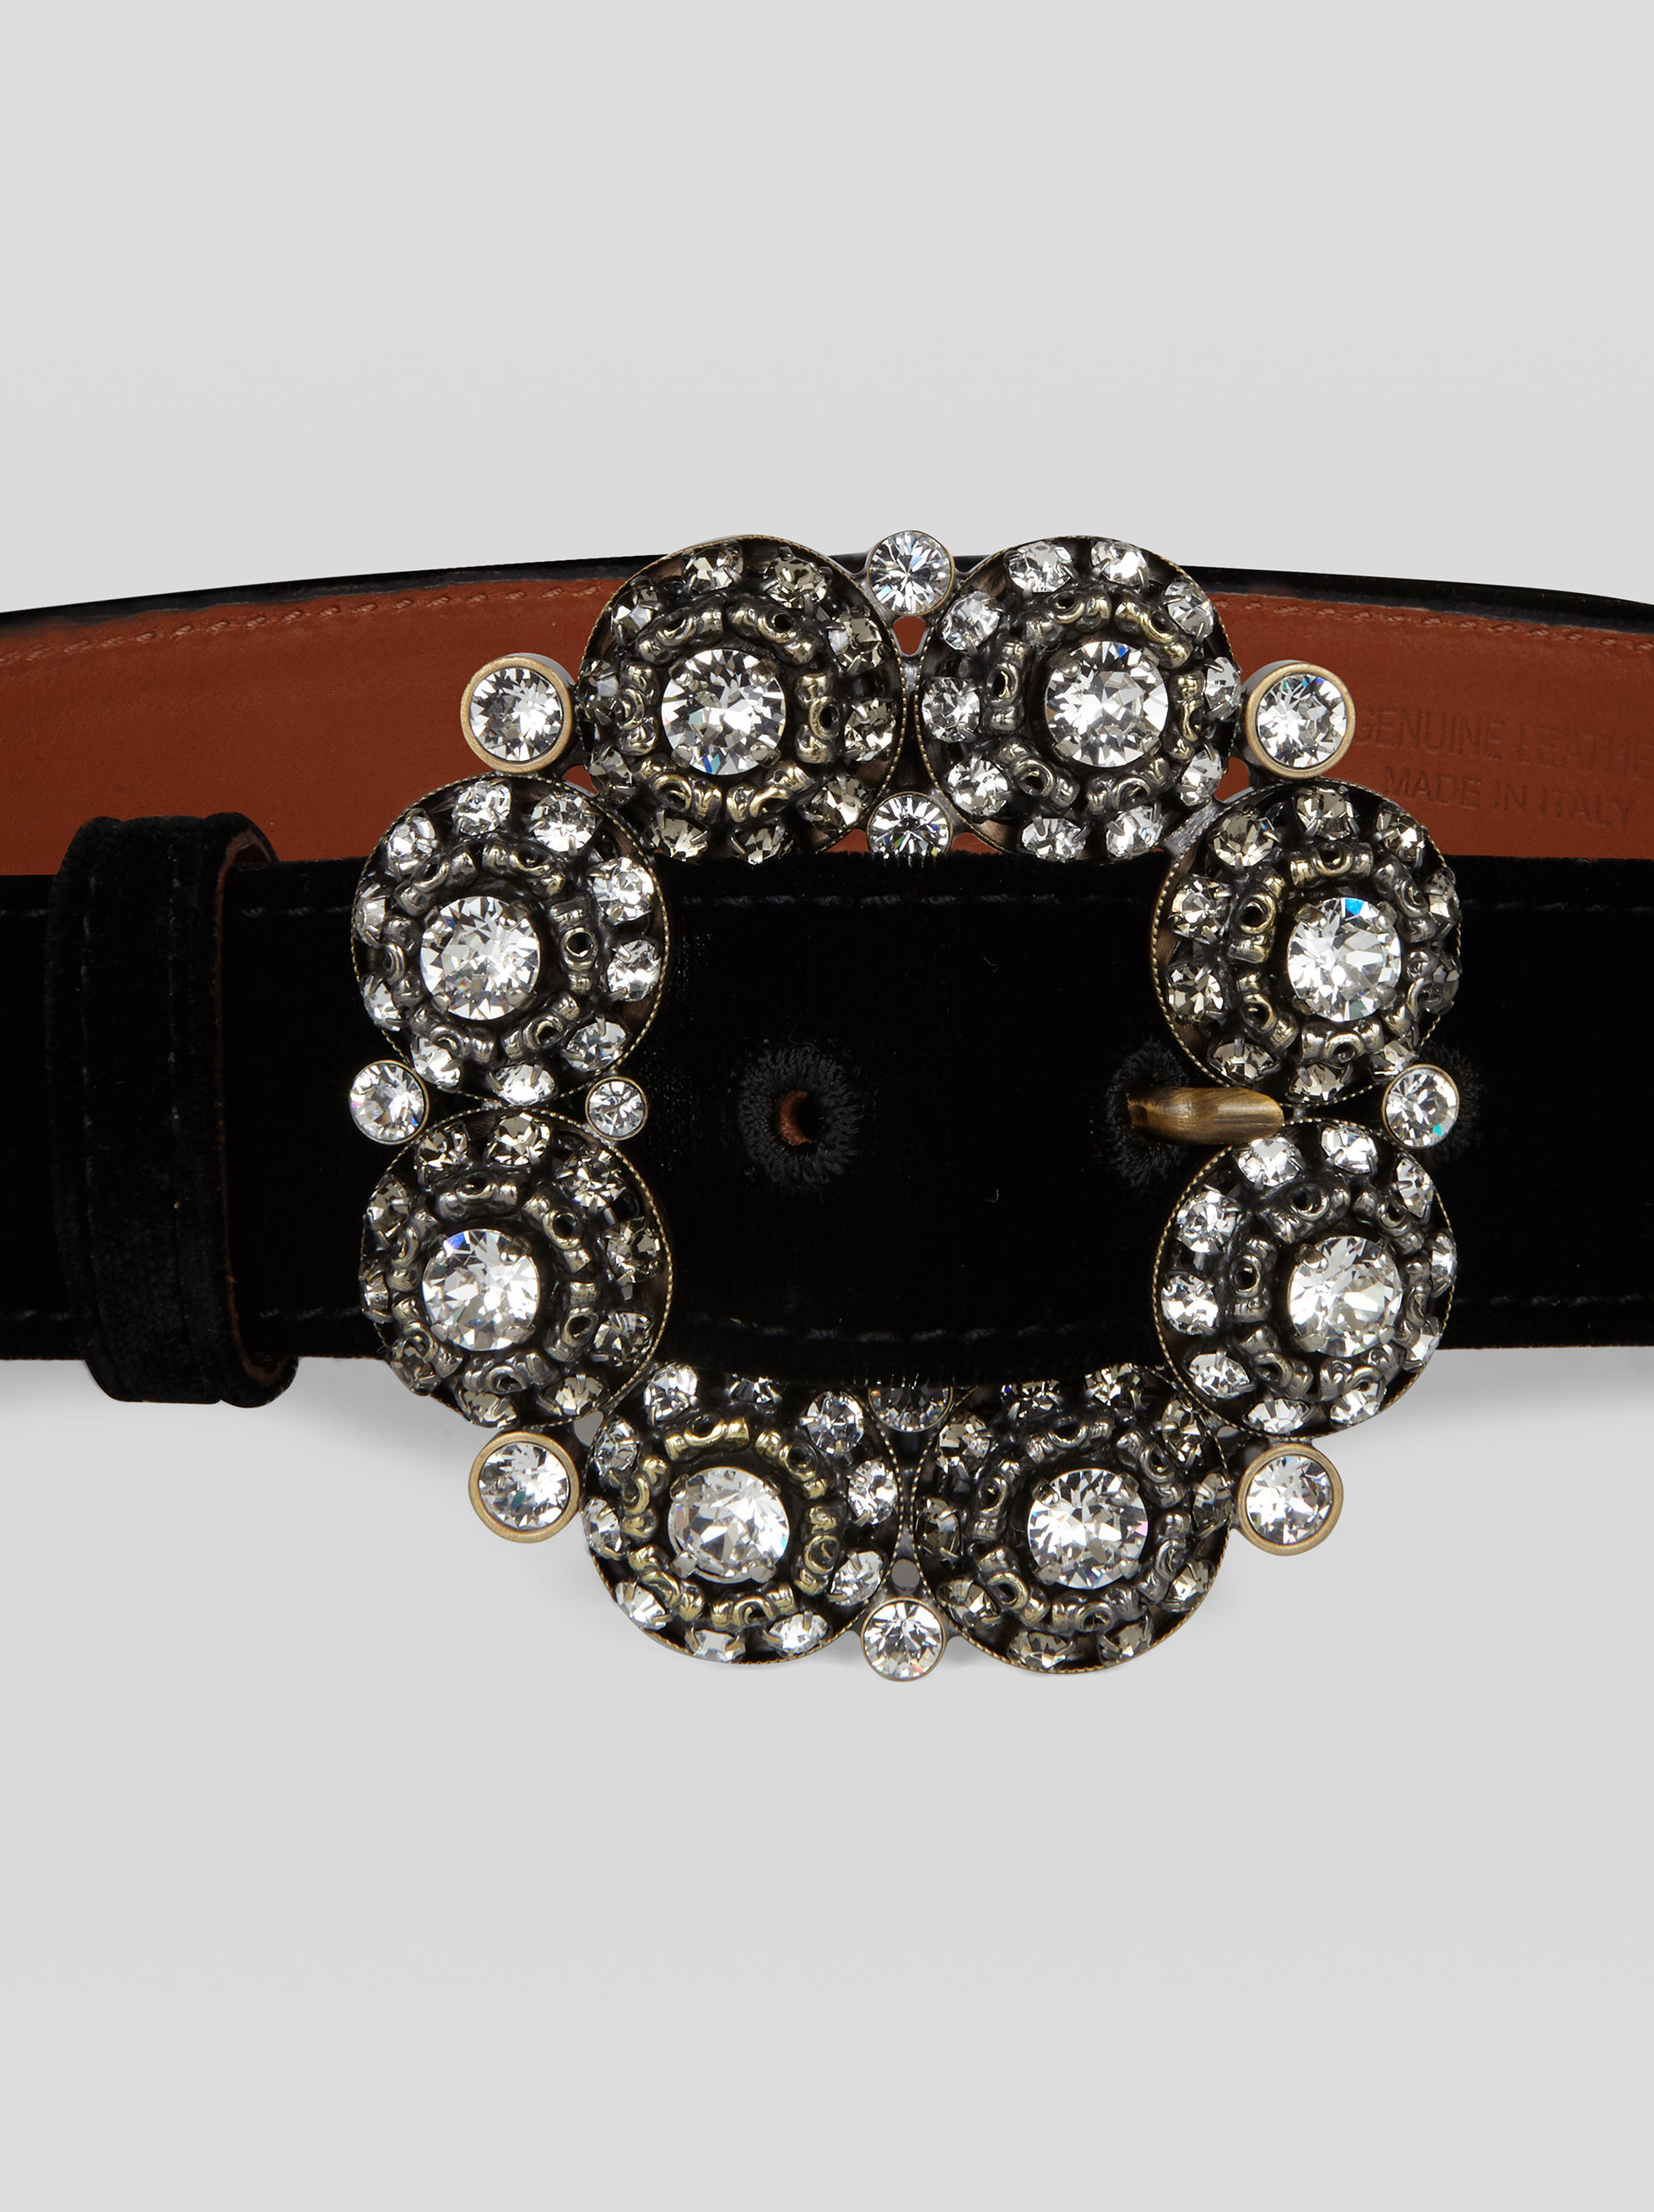 VELVET BELT WITH JEWEL BUCKLE